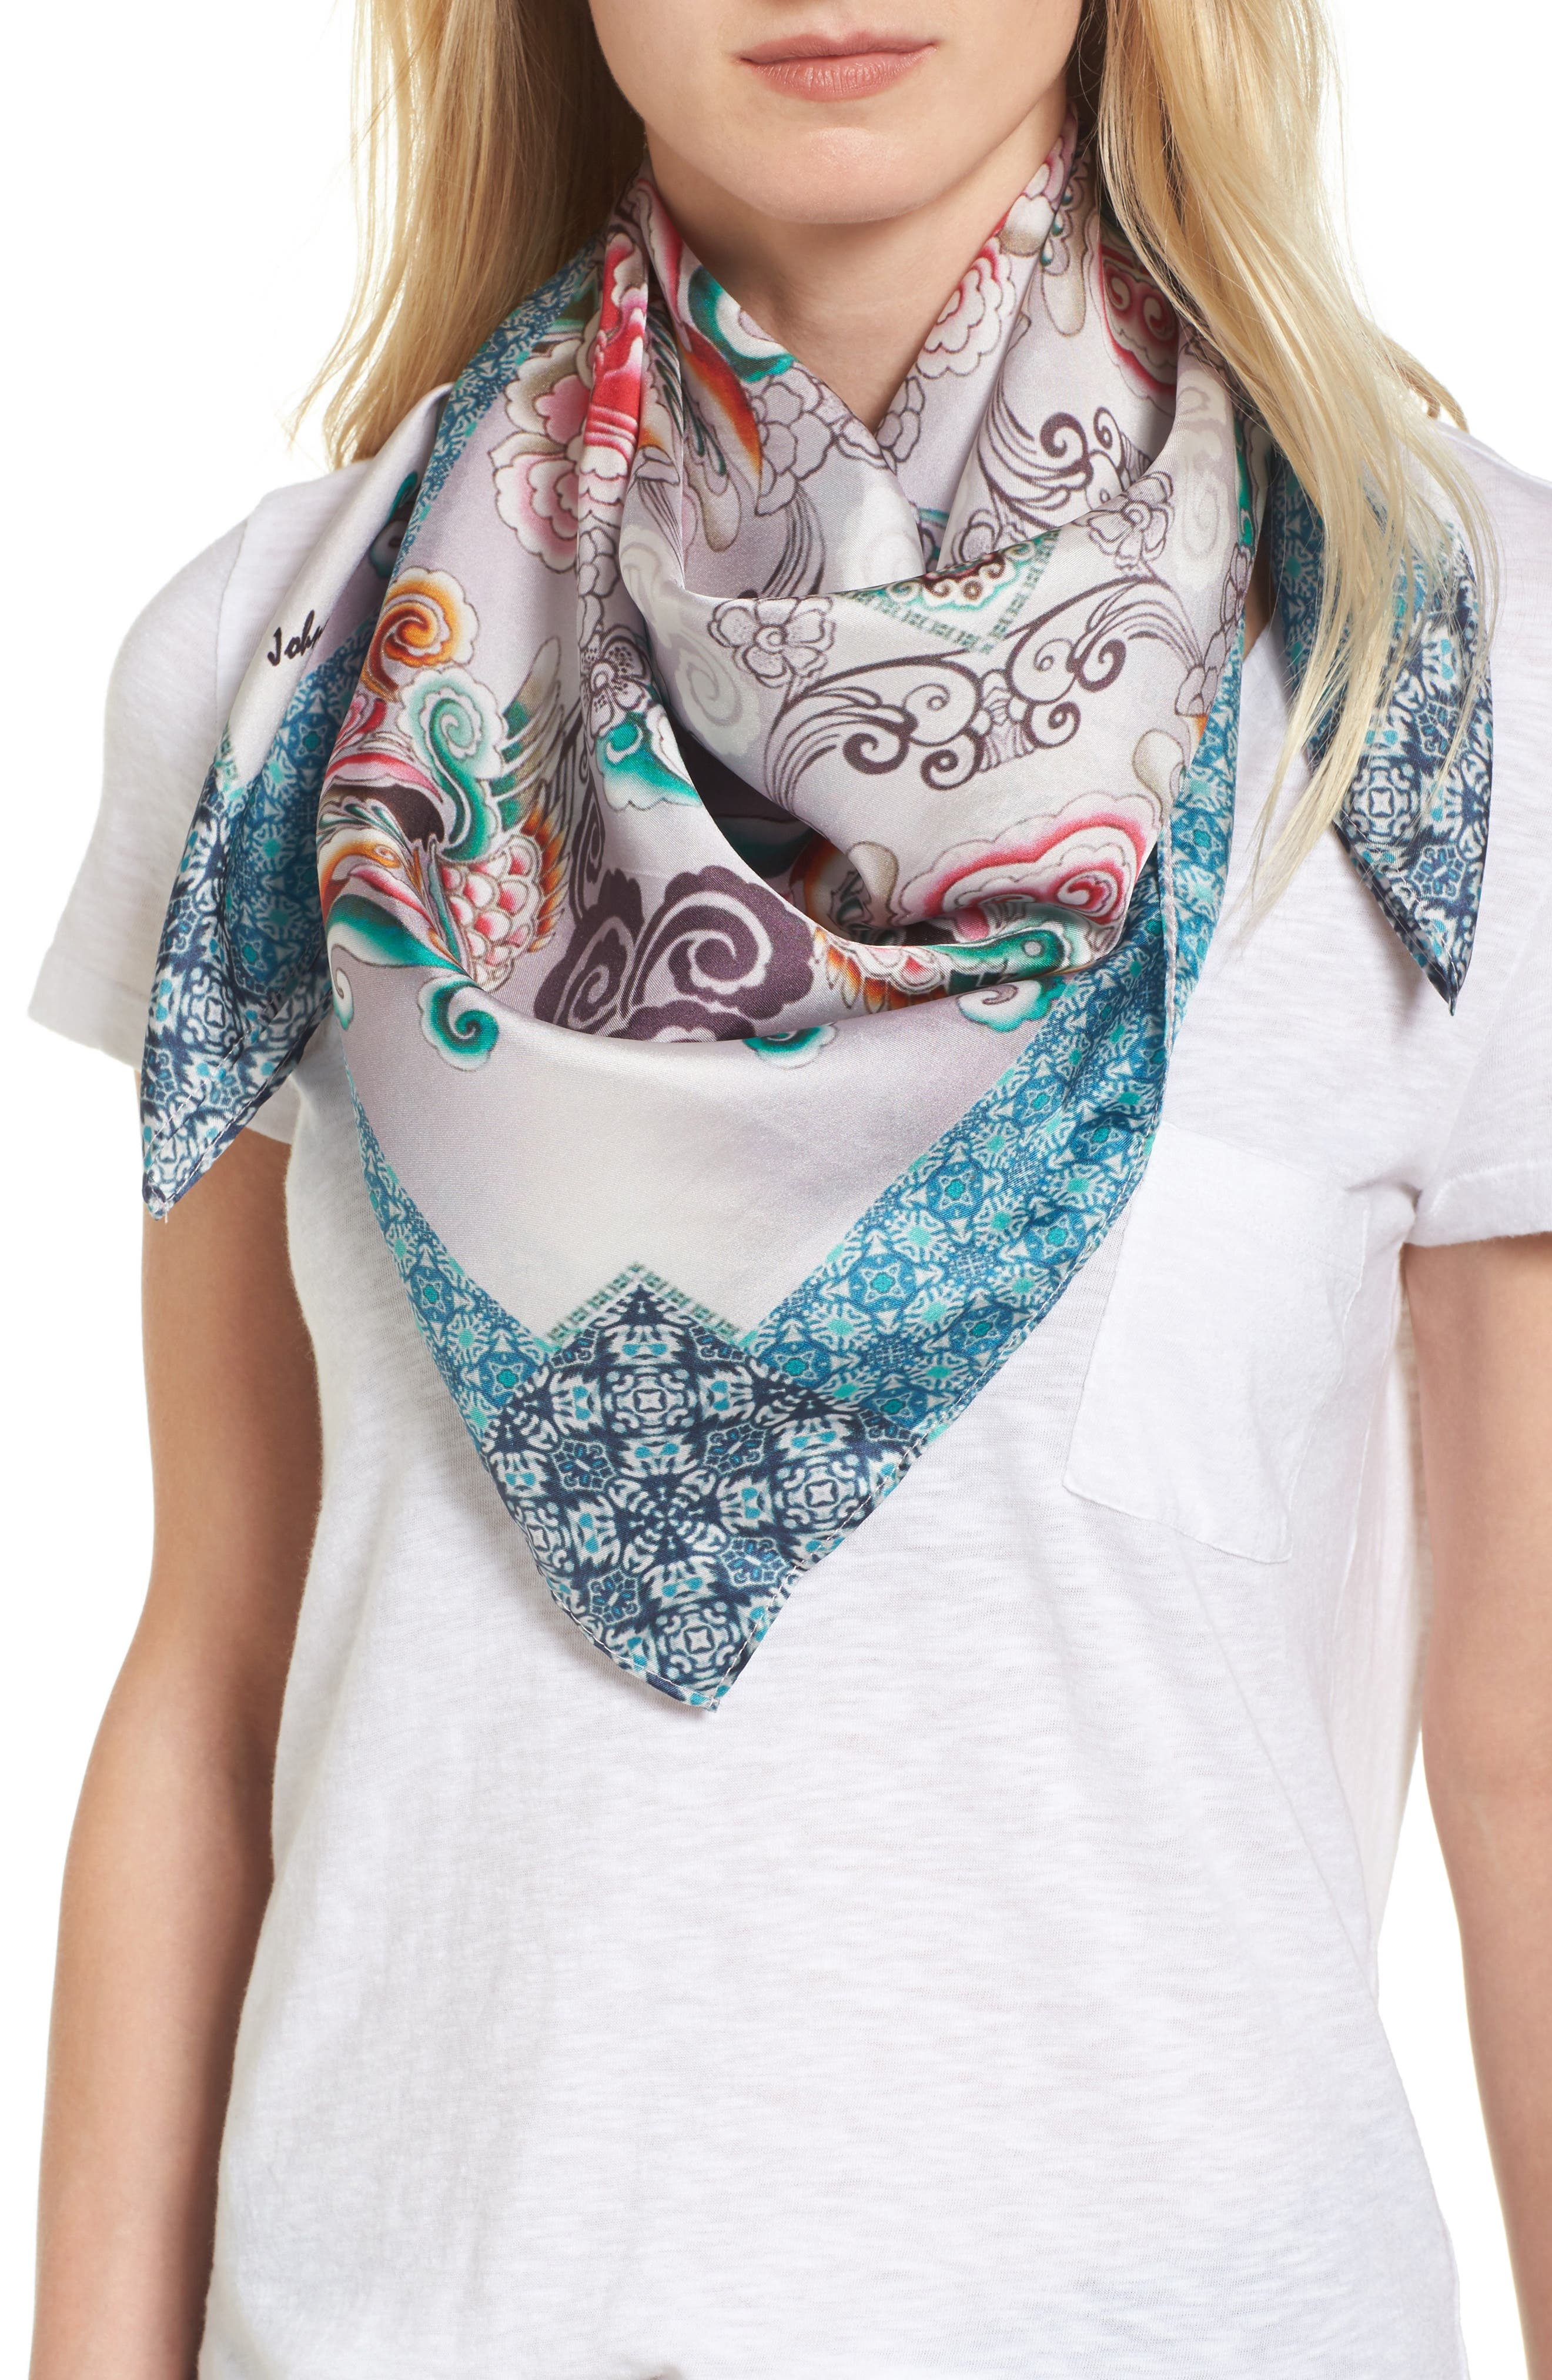 Saint Square Silk Scarf,                         Main,                         color, Mixed Print